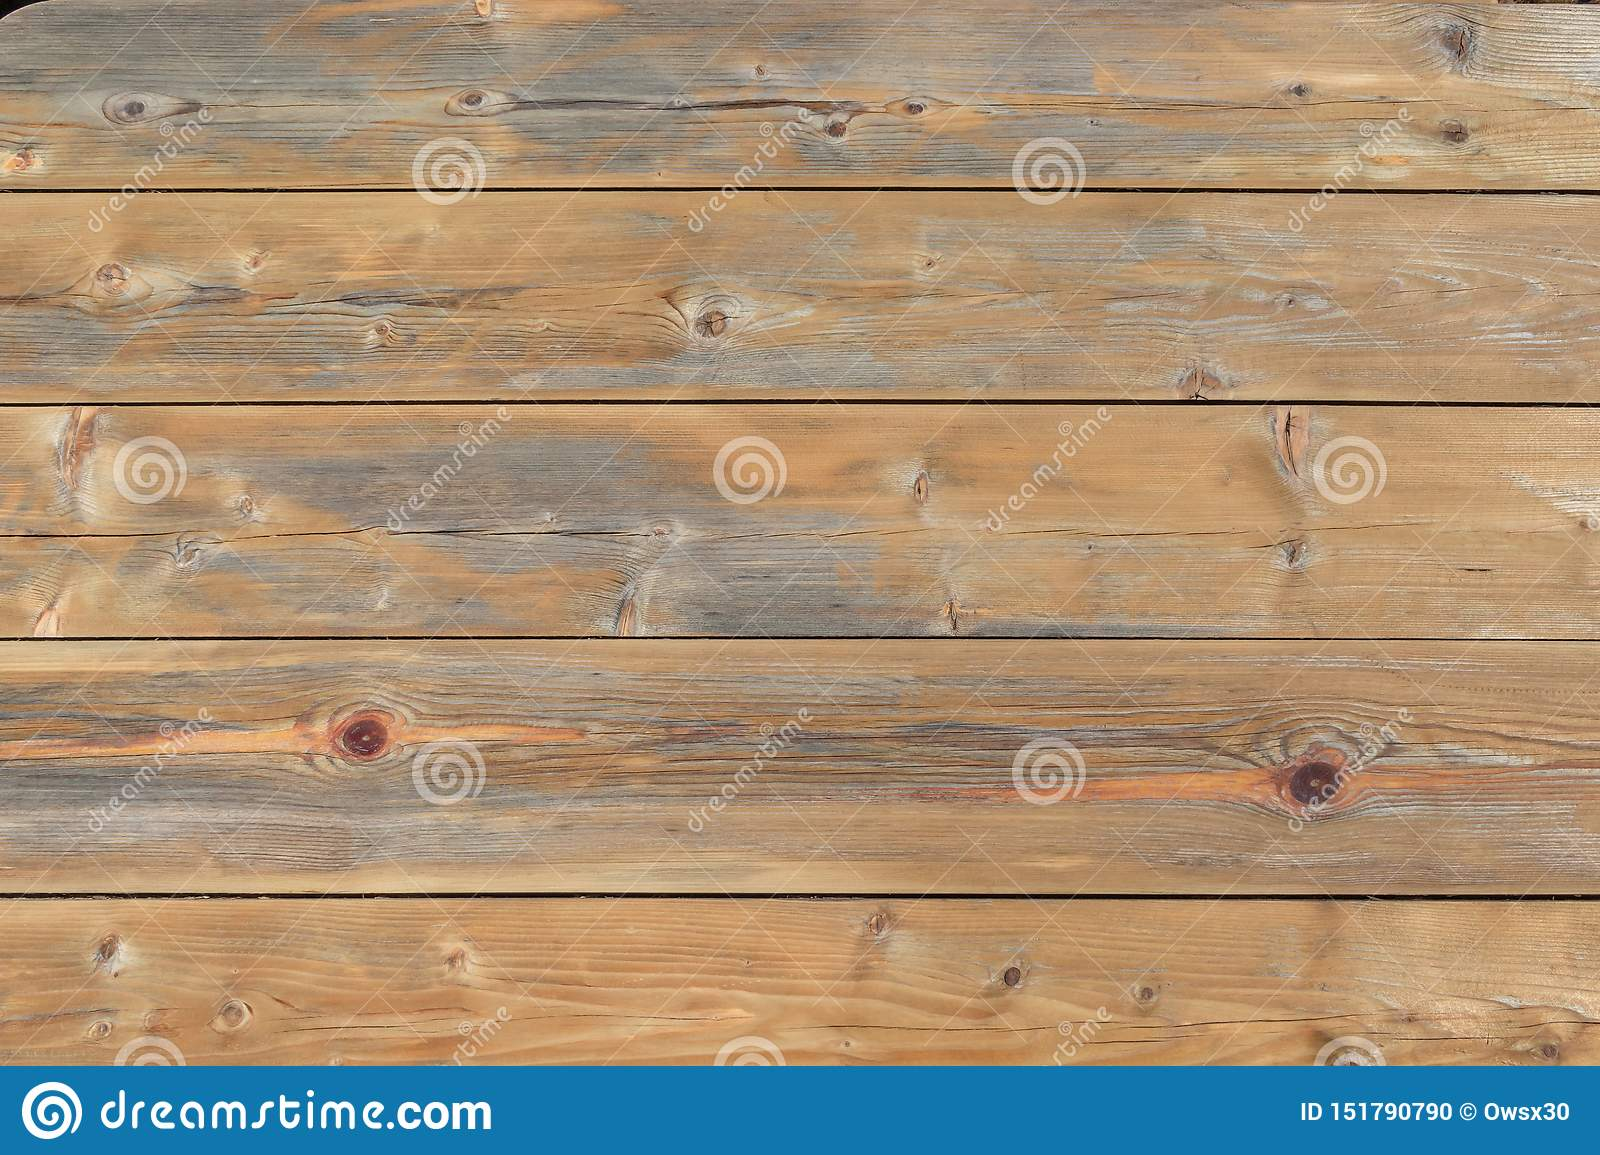 Old Wood Texture Natural Pine Wood Background With Knots